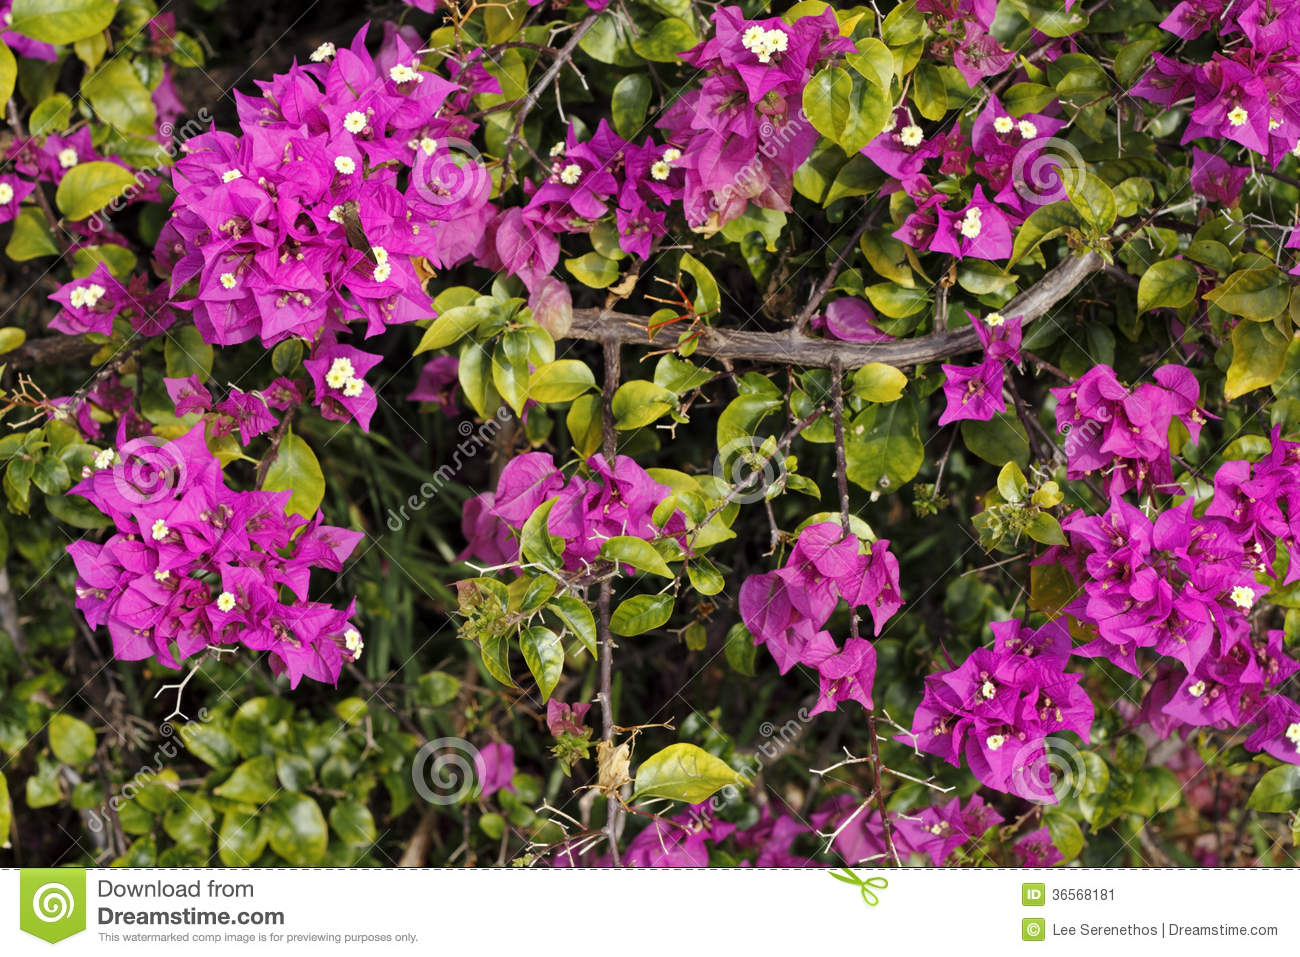 Shrubs with purple flowers at end of branch - Purple Bougainvillea Shrub